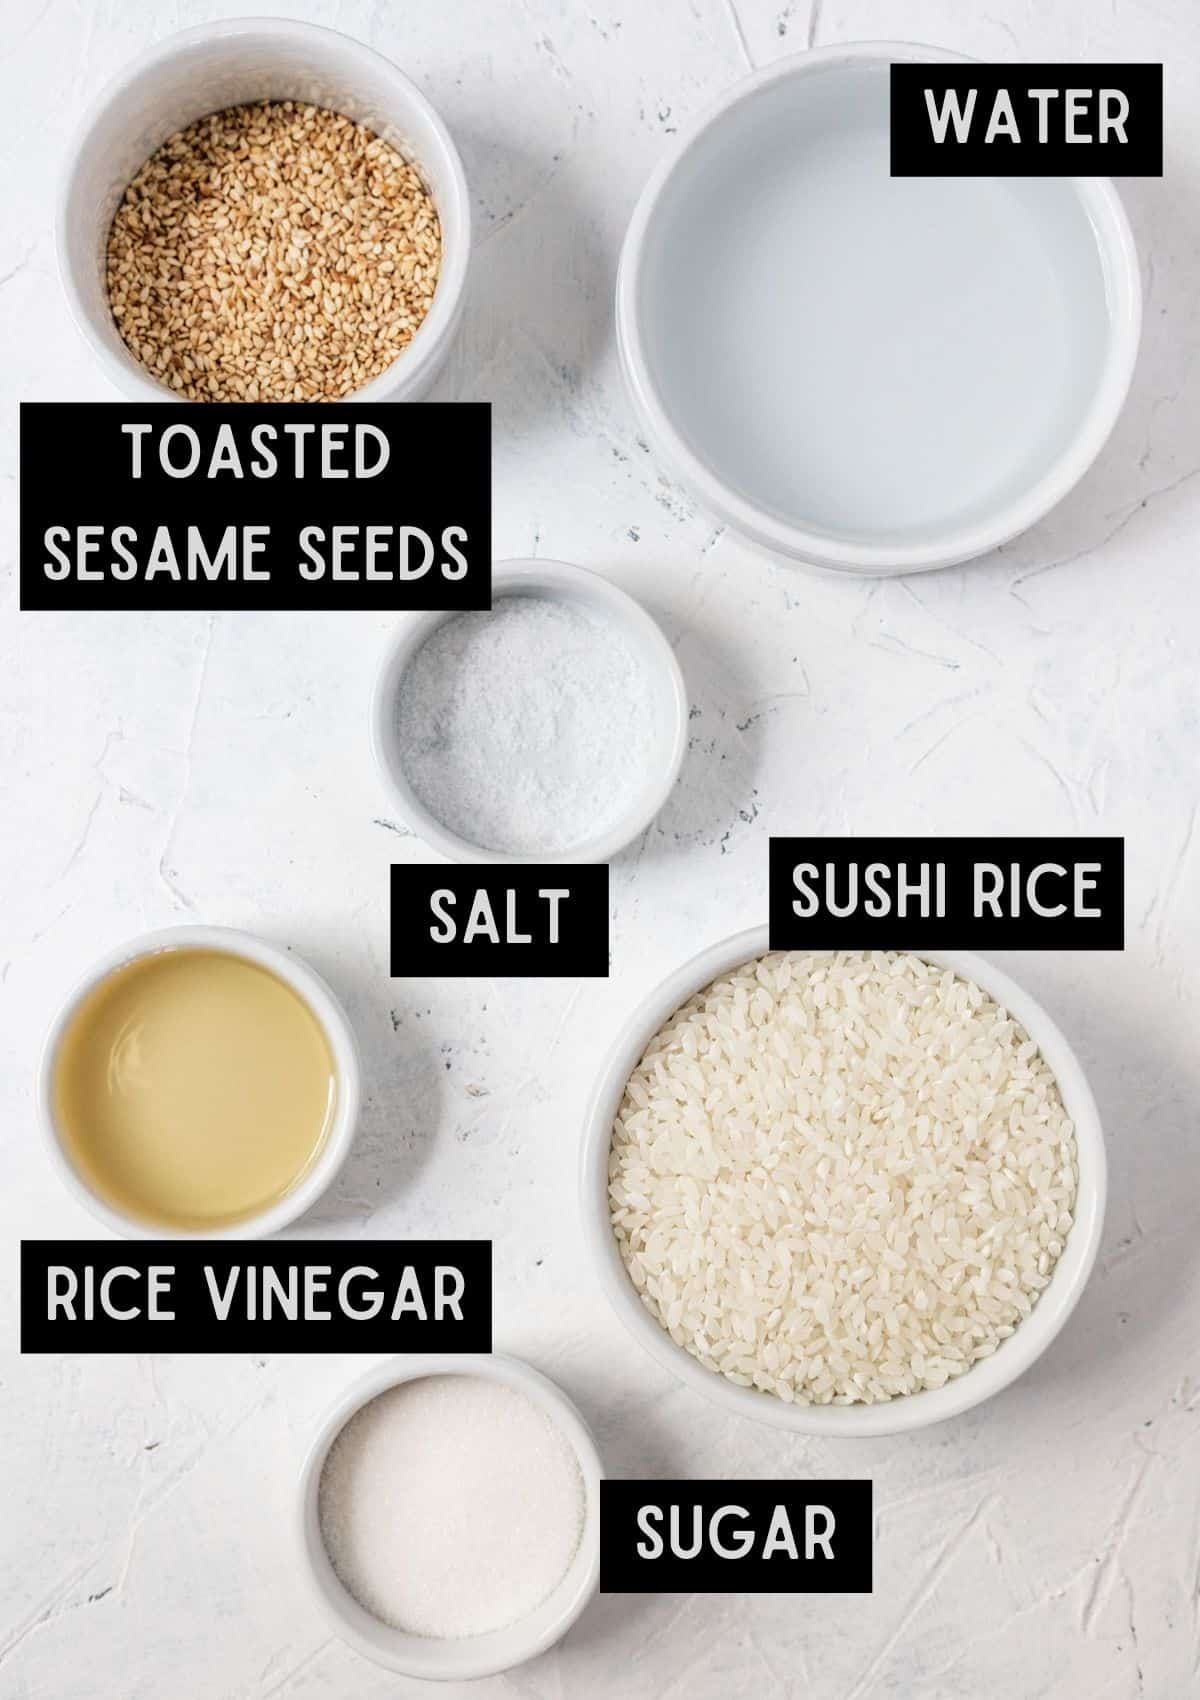 Labelled ingredients for instant pot sushi rice (see recipe for details).